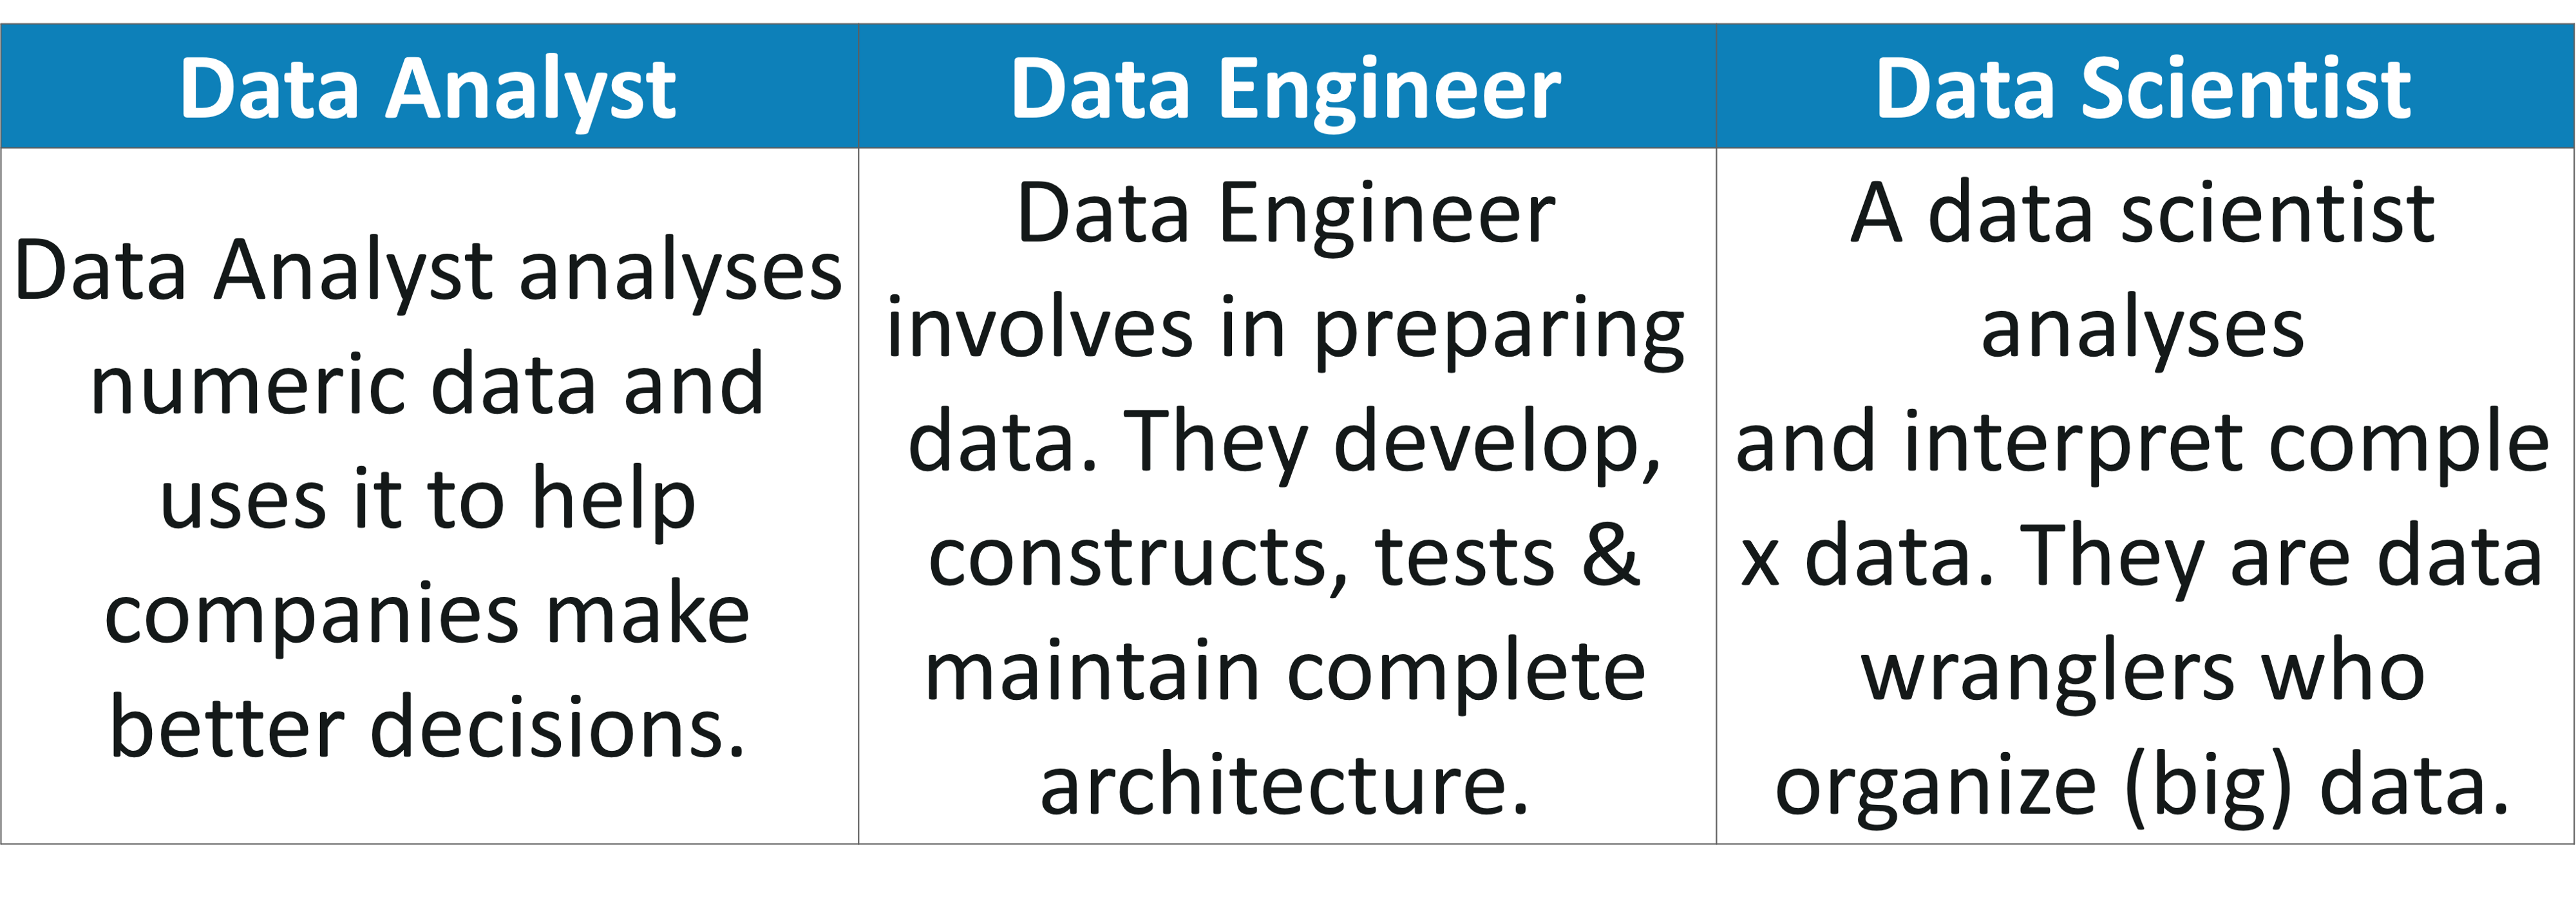 Data Analyst vs Data Engineer vs Data Scientist - Edureka